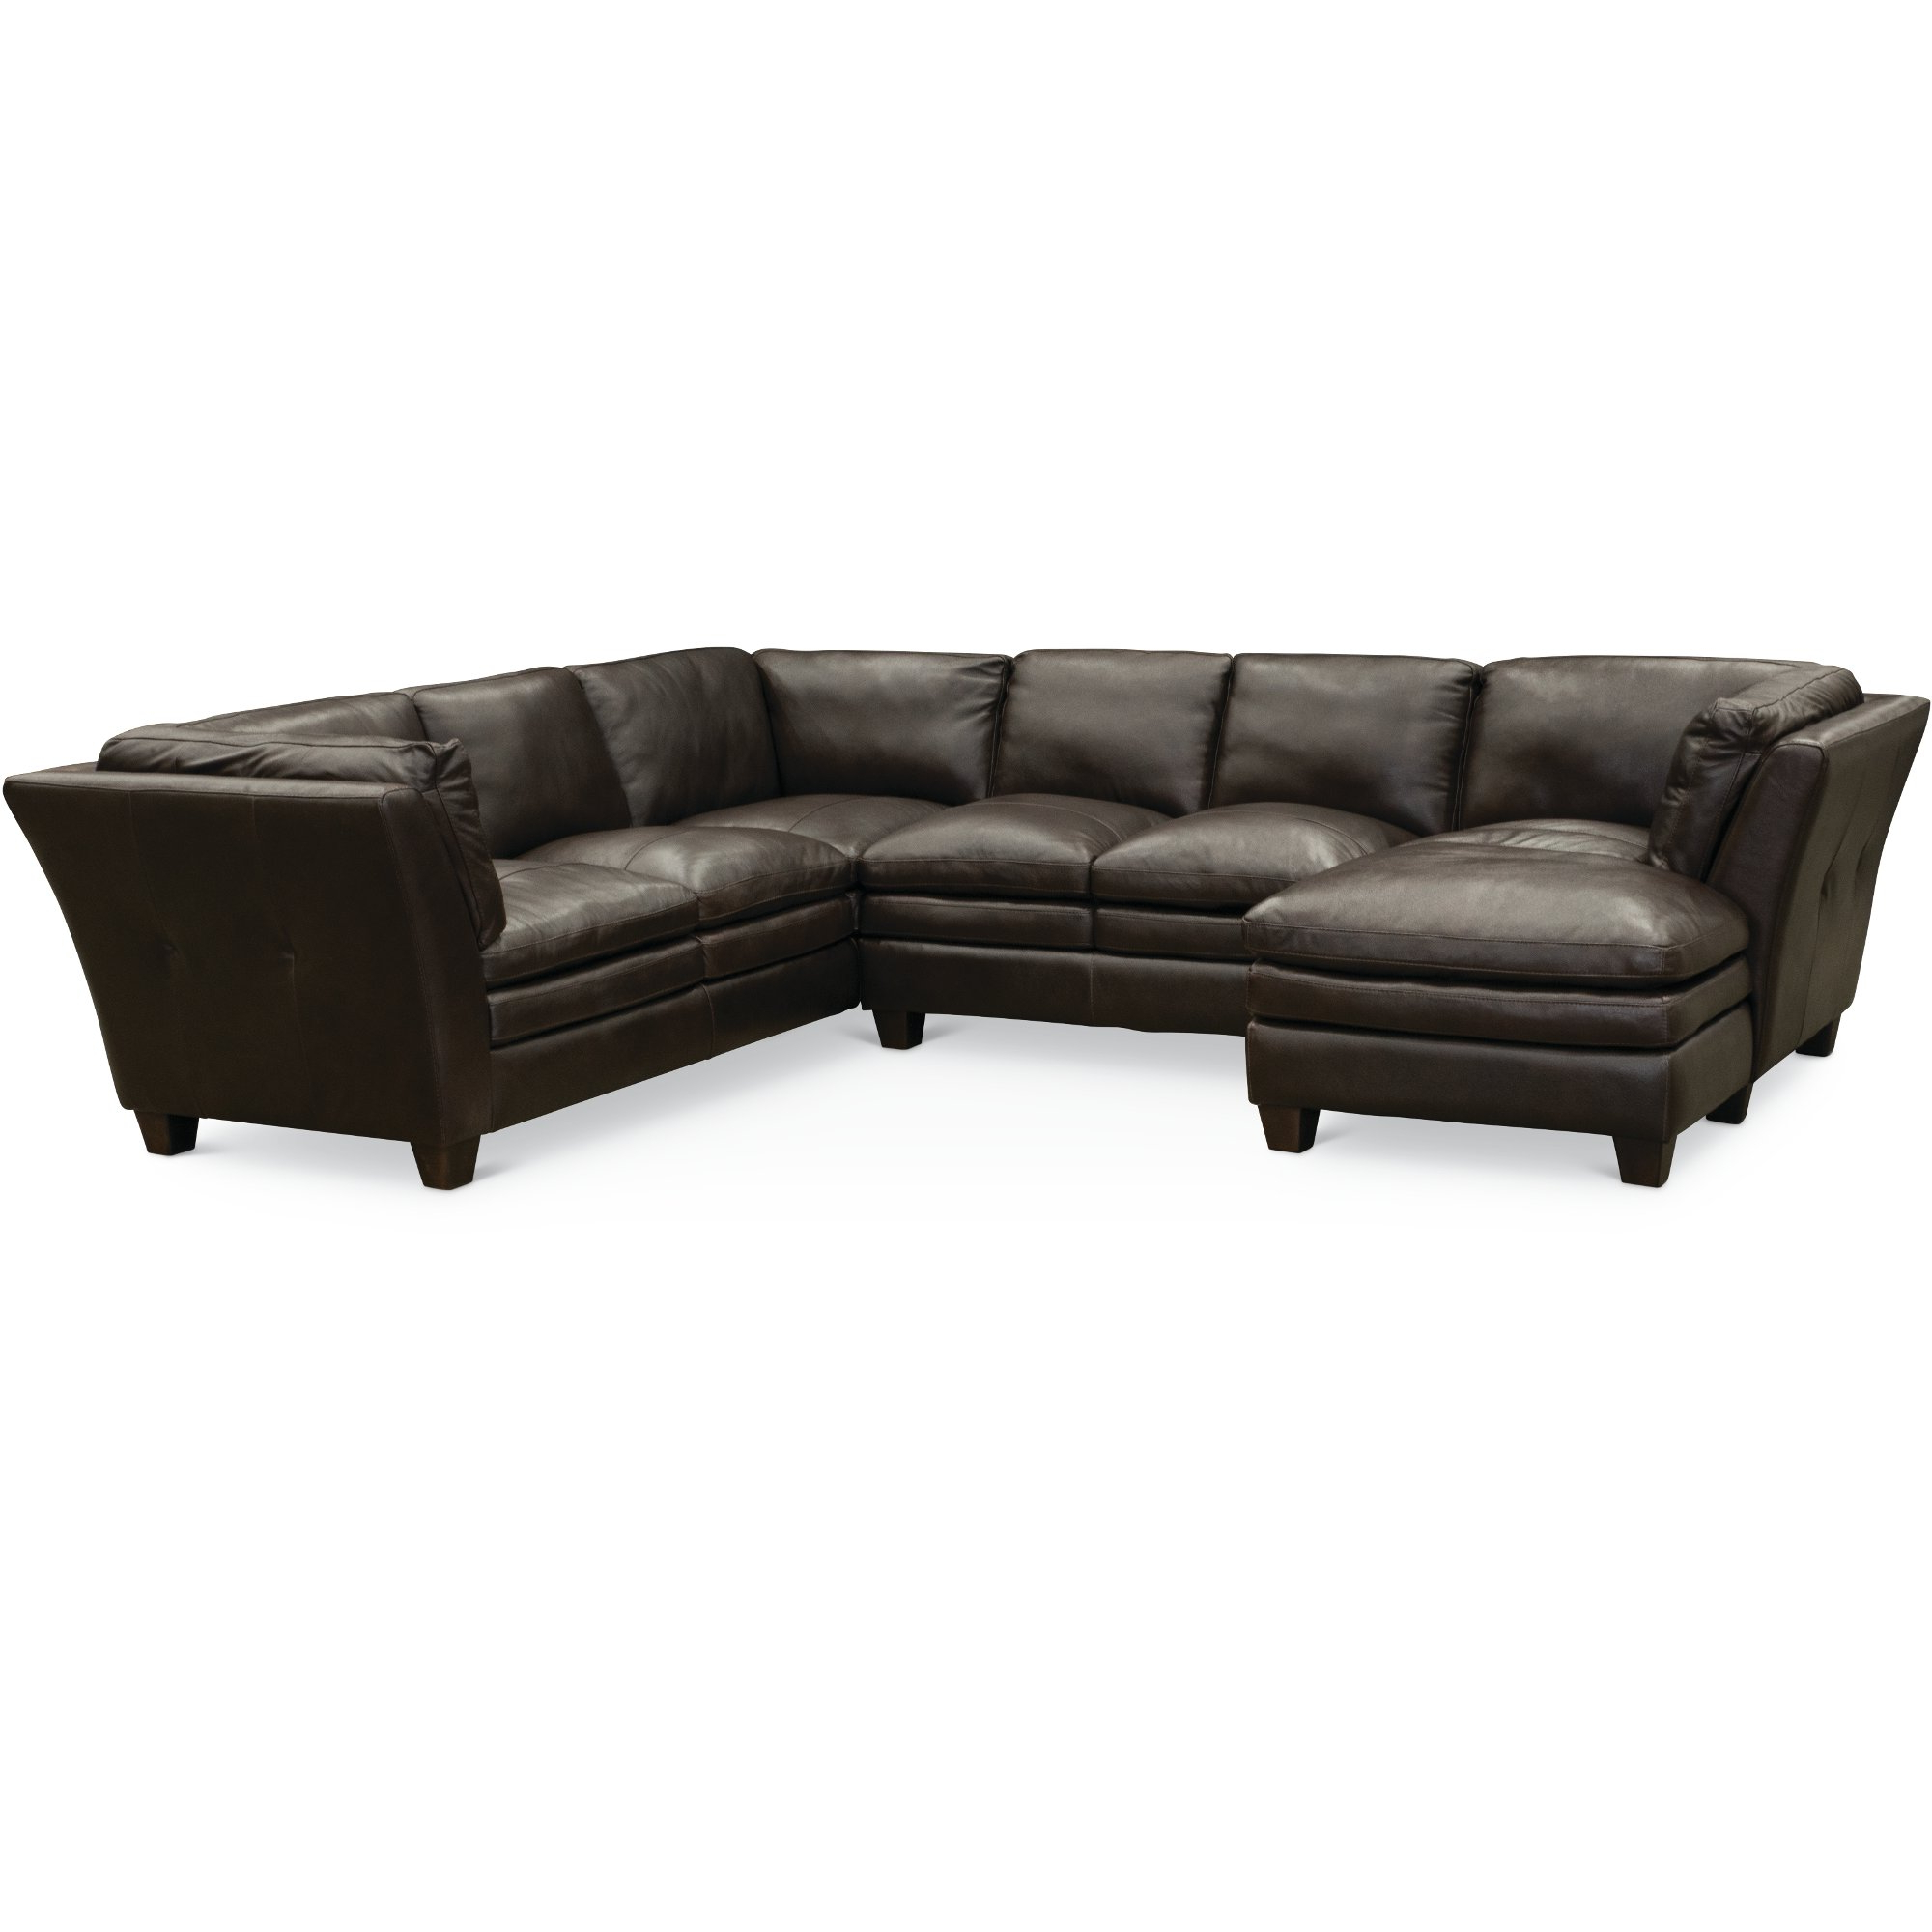 Sierra Foam Ii 3 Piece Sectionals With Regard To Latest Contemporary Dark Brown Leather 3 Piece Sectional Sofa – Capri (View 16 of 20)